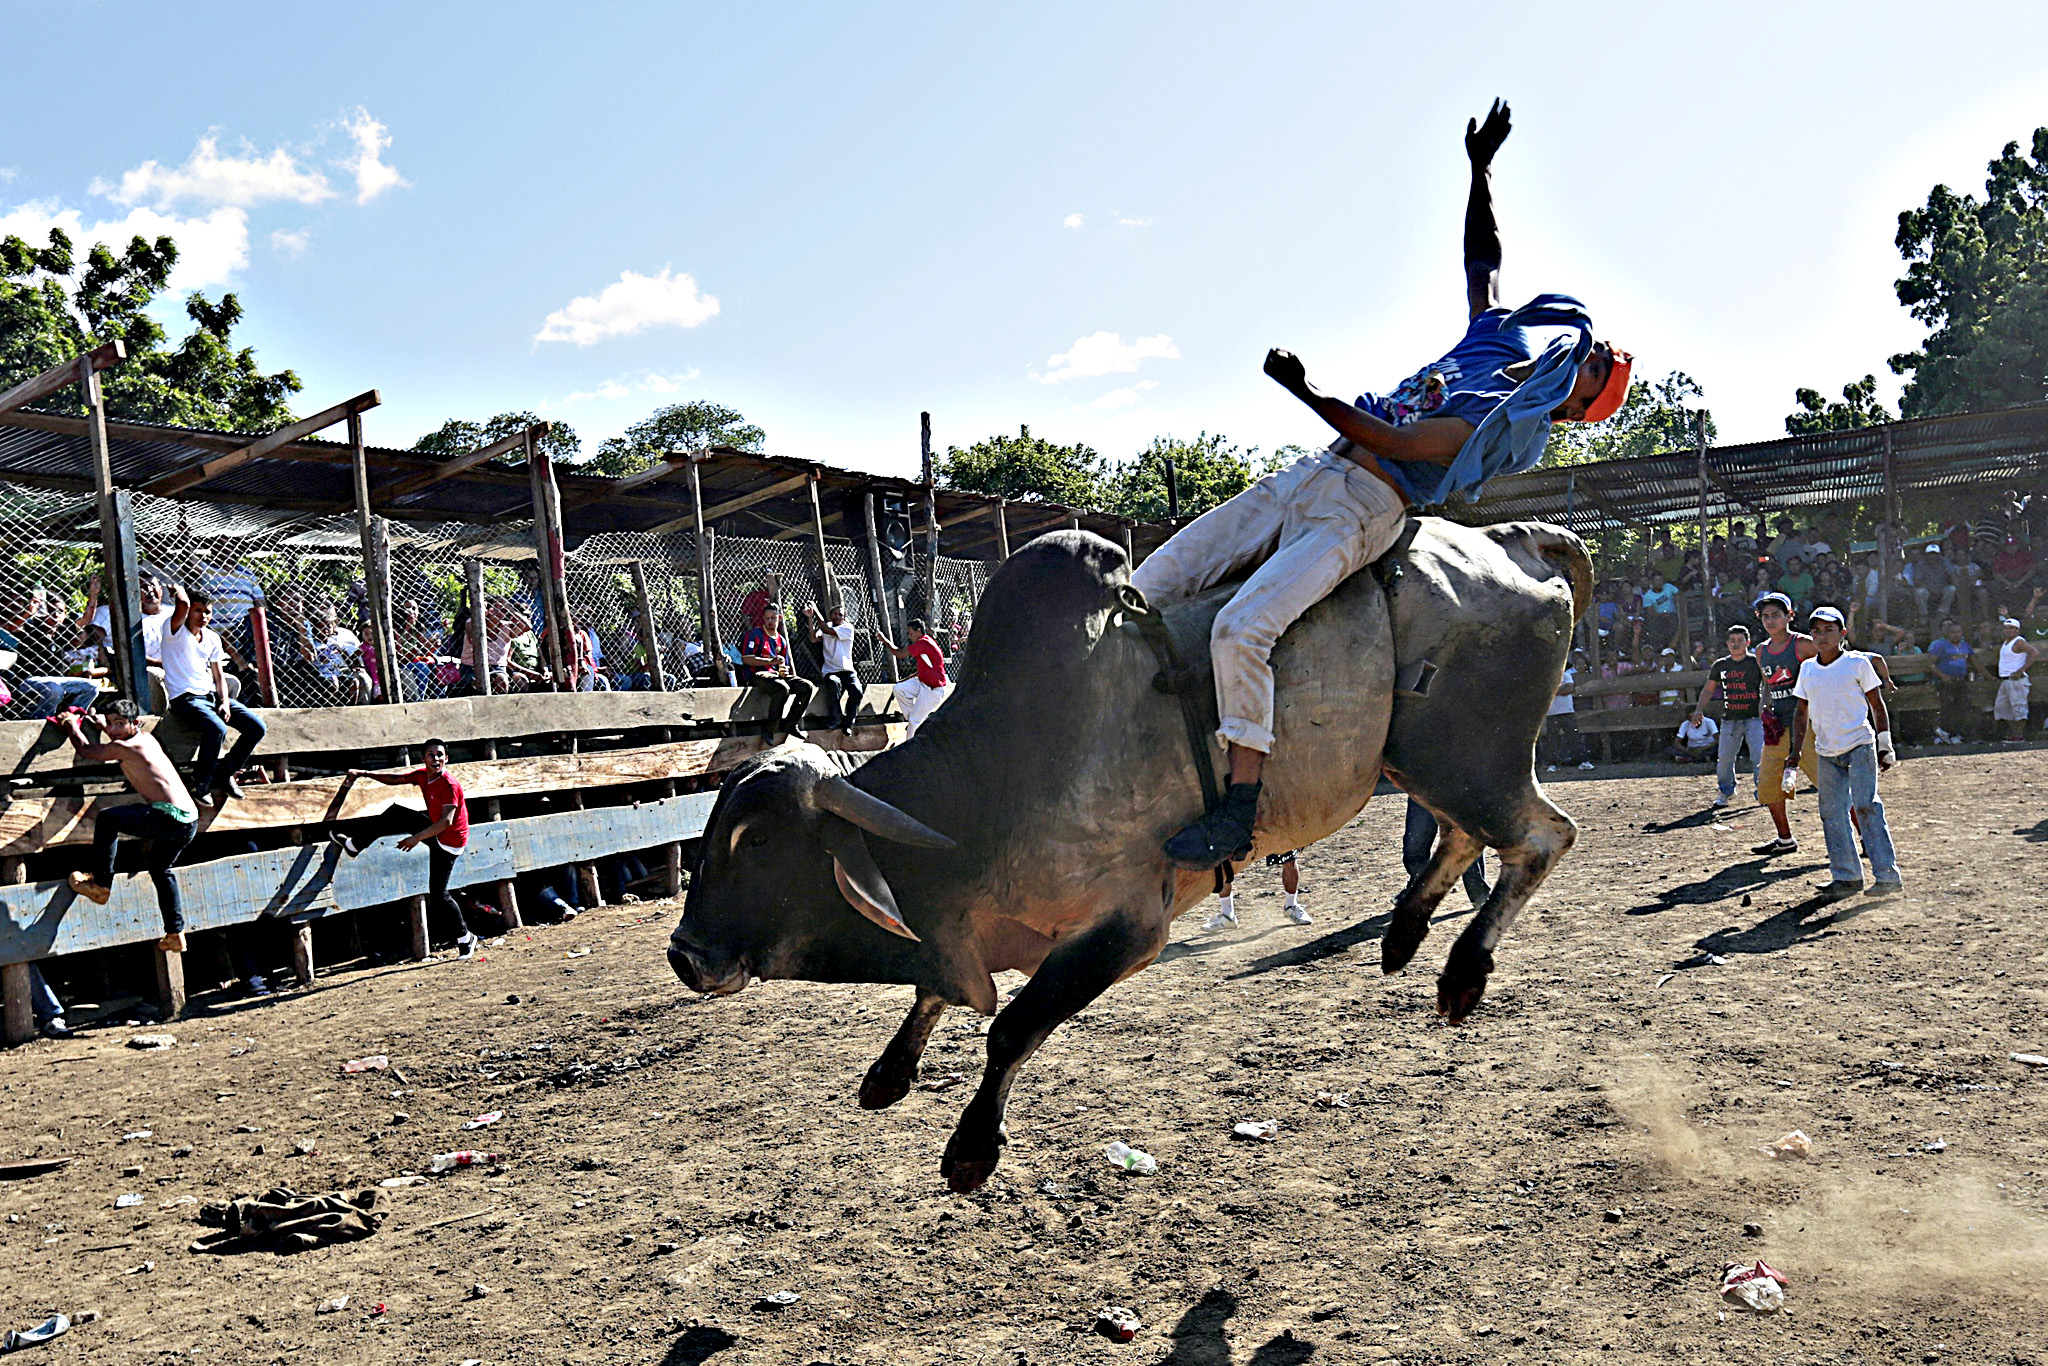 A man rides a bull during festivities honouring the capital's patron saint Santo Domingo de Guzman in Managua, Nicaragua